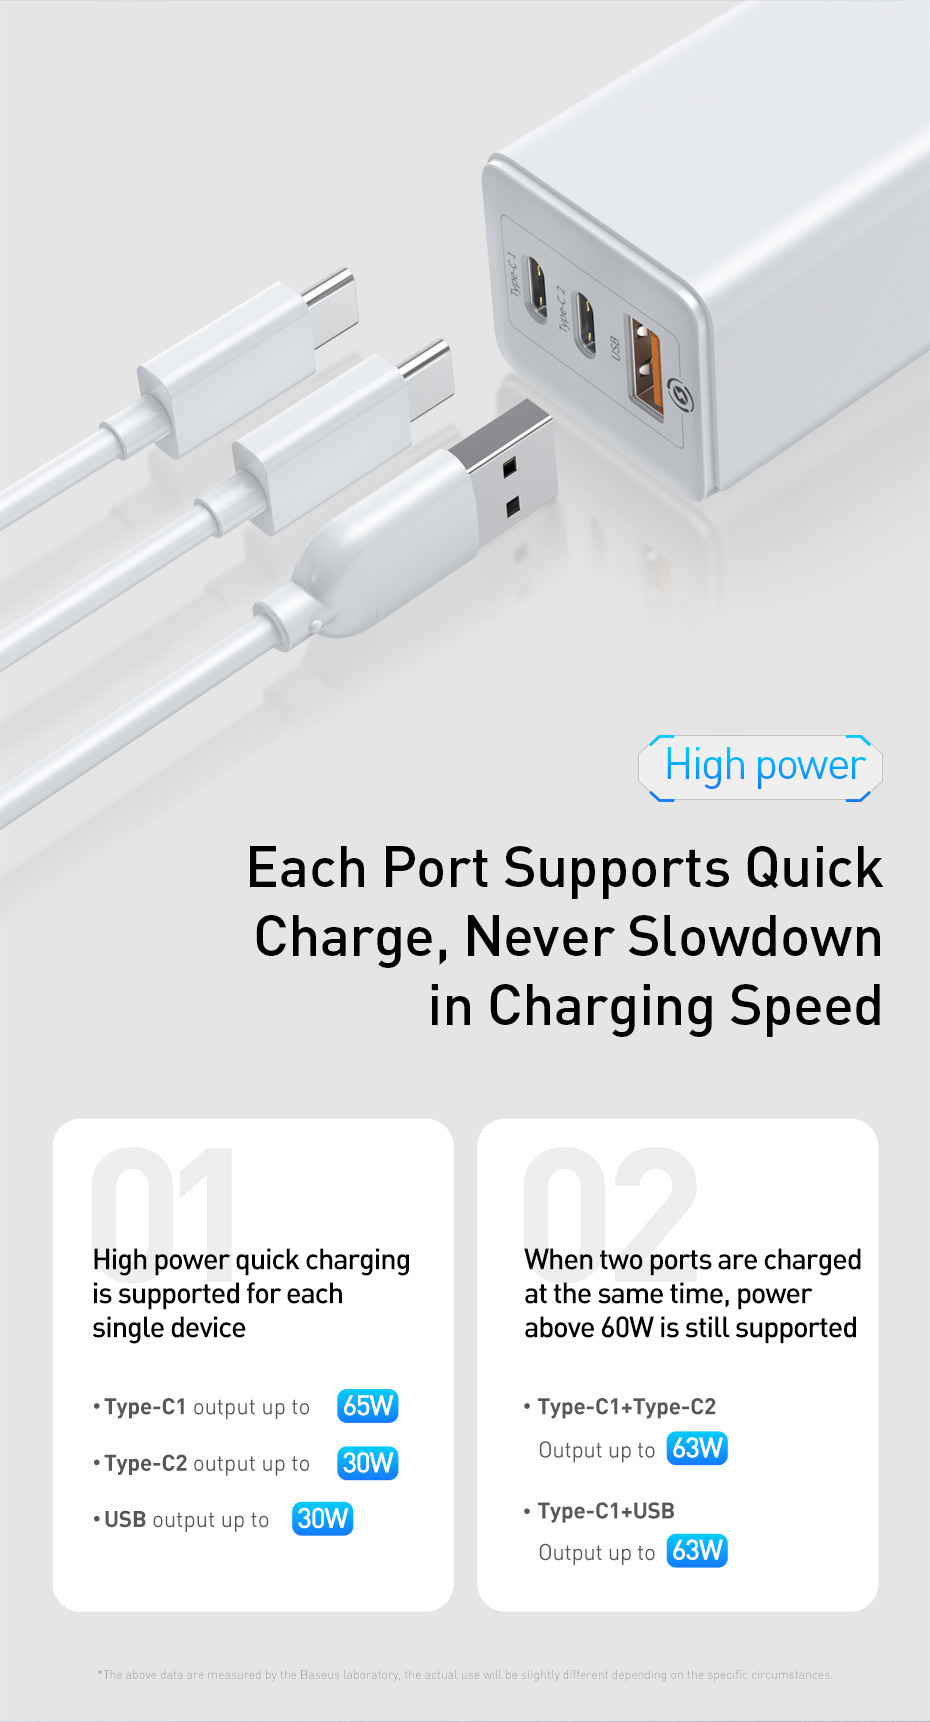 Baseus 65w Gan Fast Charger With Quick Charge 4 0 3 0 Afc Scp Pd 3 0 Usb Charger For Iphone Macbook Pro Xiaomi Samsung Mobile Phone Usb Chargers Iphone Macbook